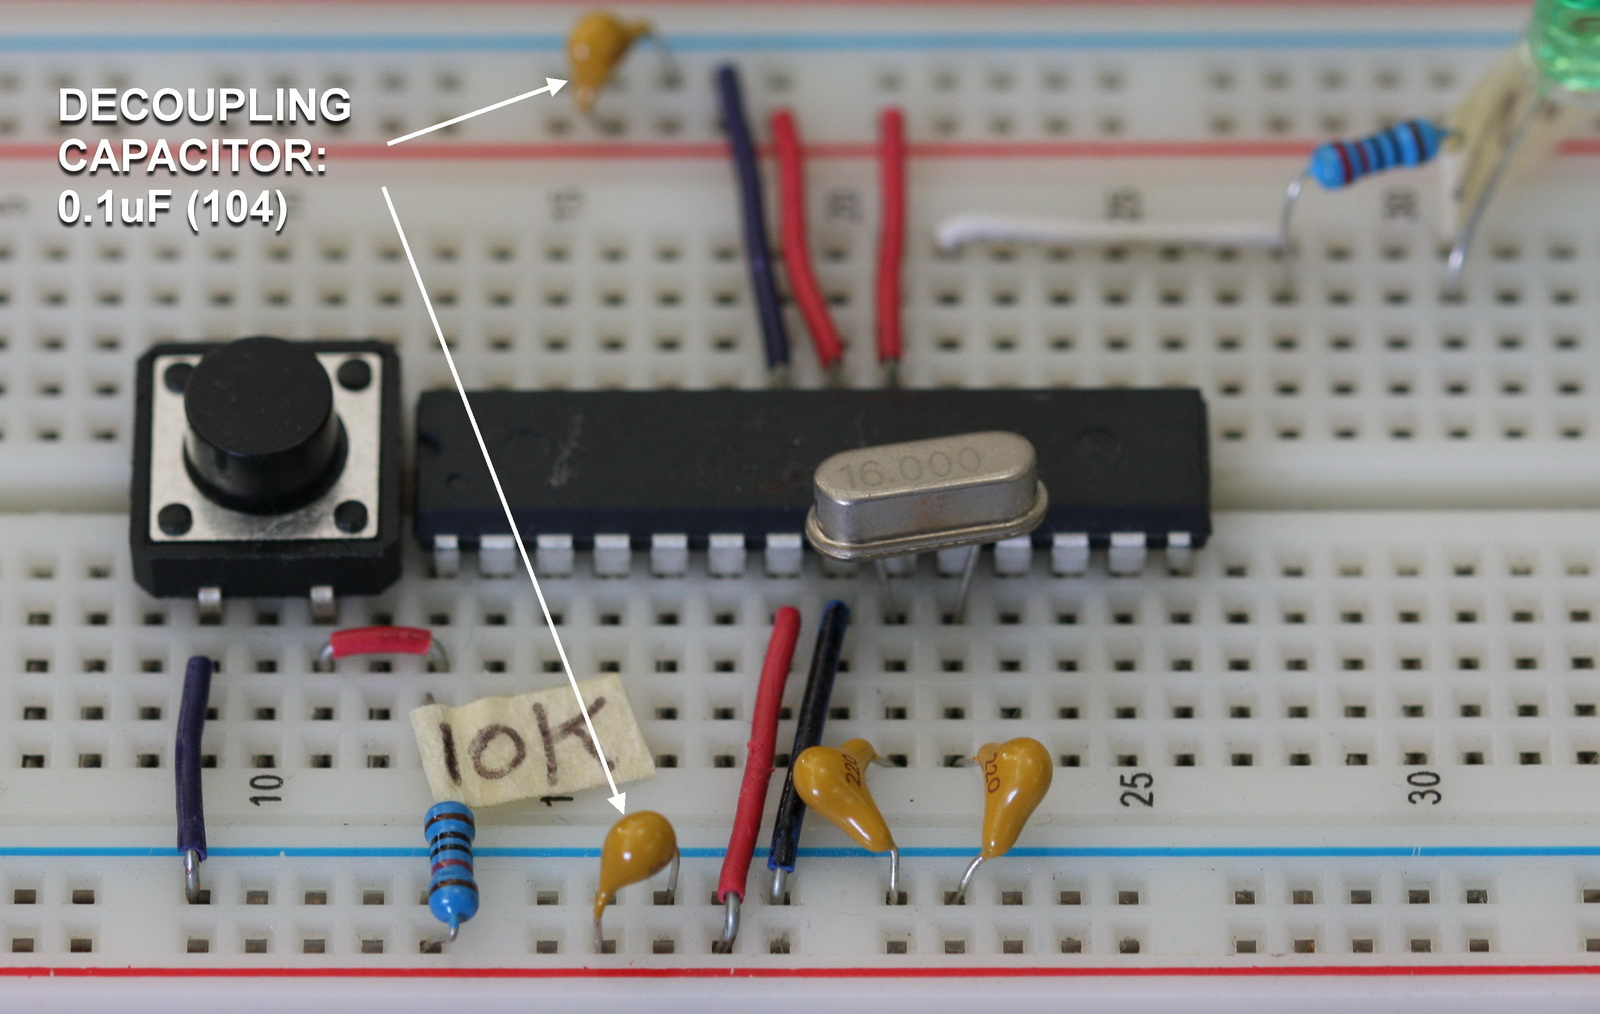 Arduino On A Breadboard Martyn Currey Capacitor Led Circuit Decoupling